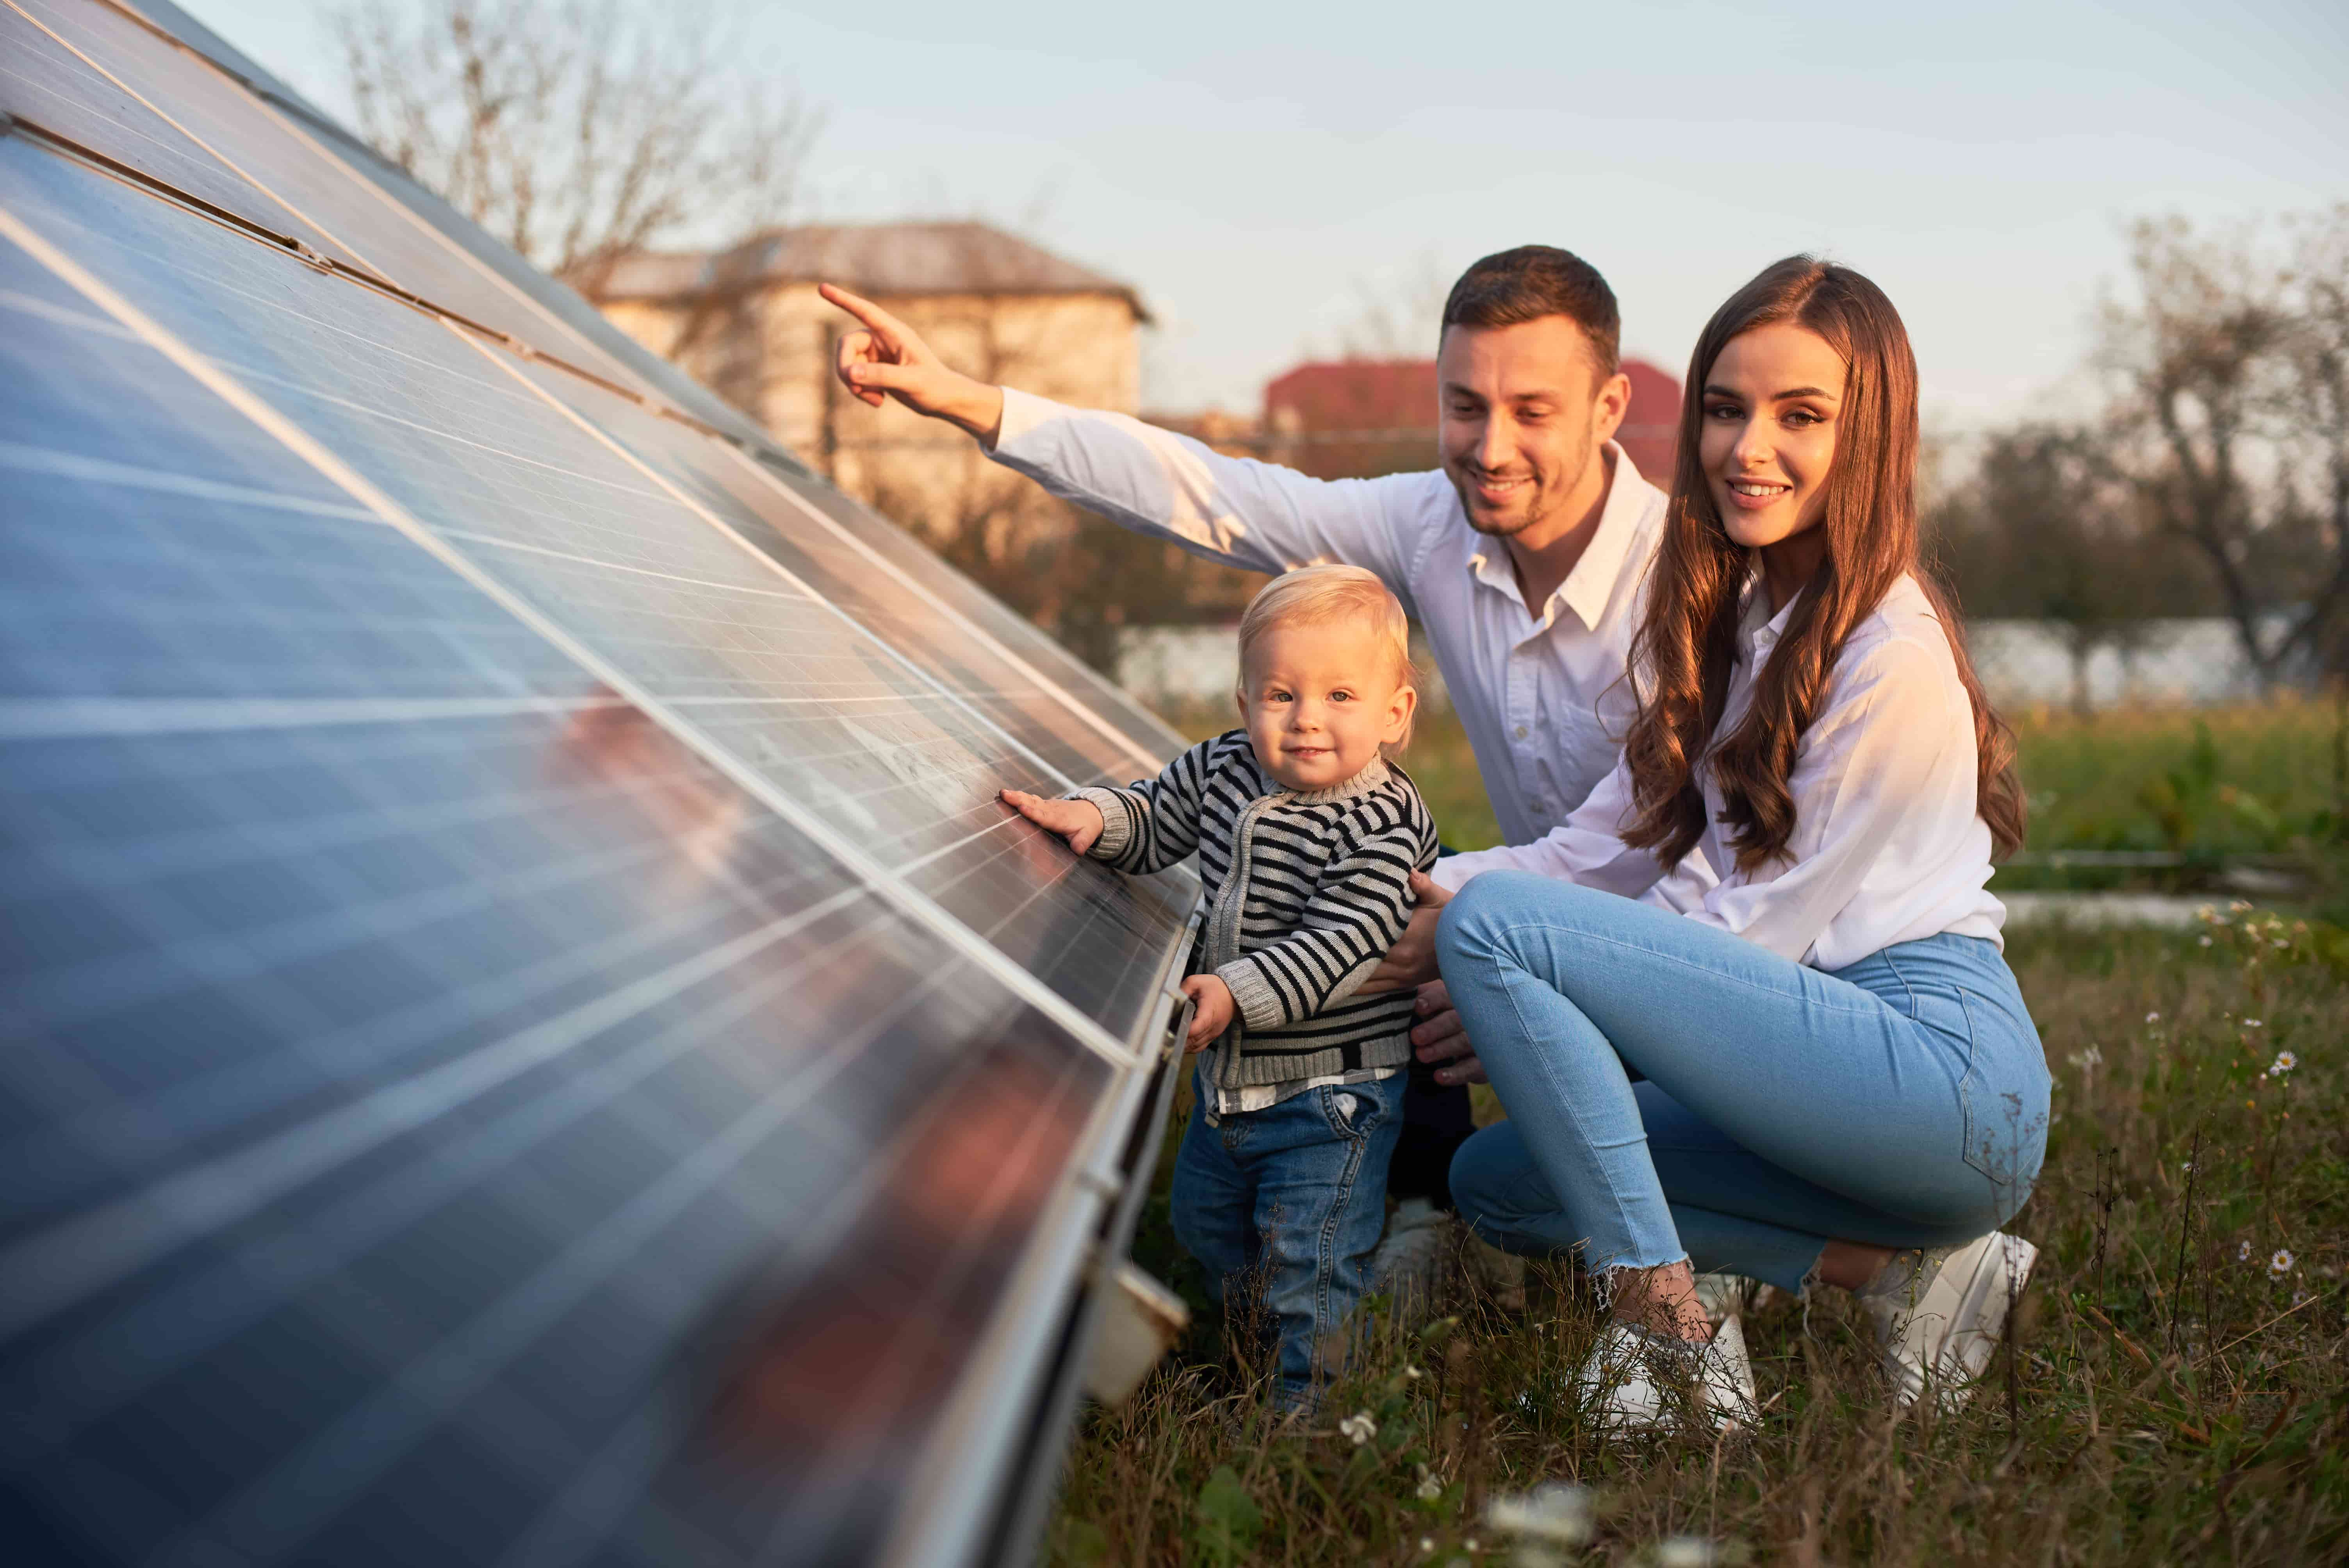 Solar panels operate very well in Arkansas and Missouri